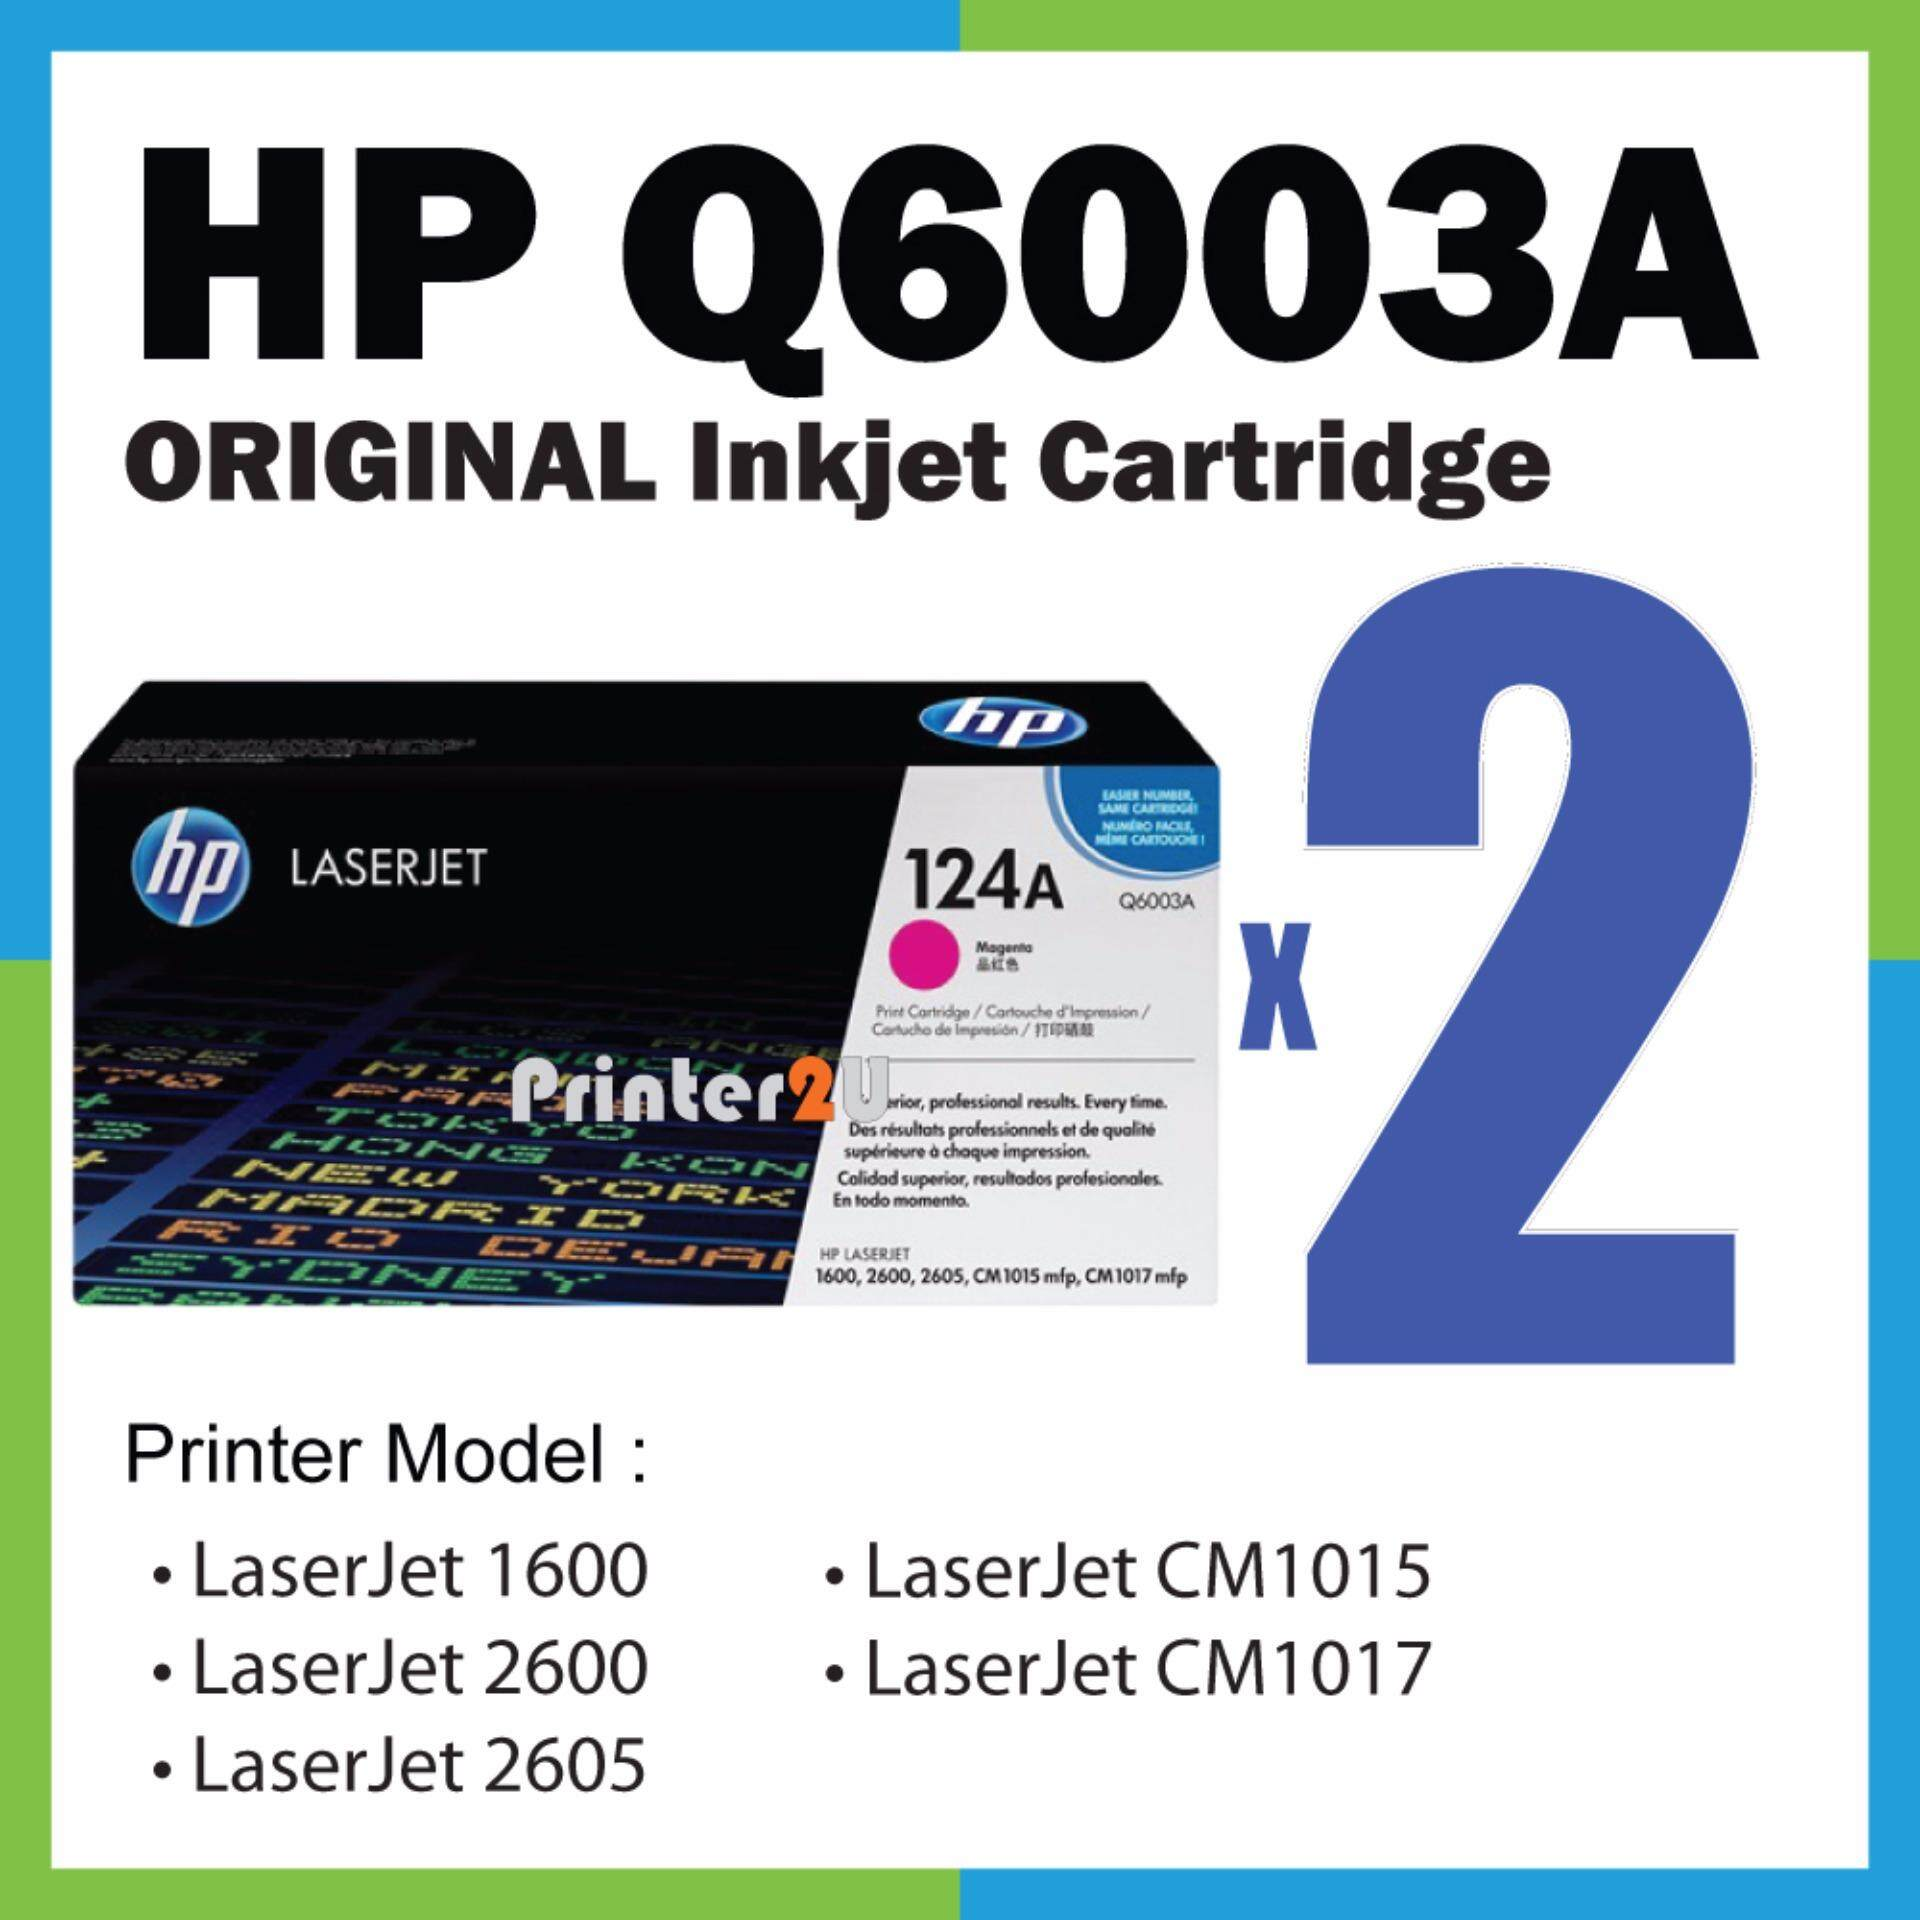 Buy Sell Cheapest 2 Unit Hp Best Quality Product Deals Malaysian 678 Black Ink Catridge Cz107aa Original Units Laser Toner Cartridge Q6003a 124a